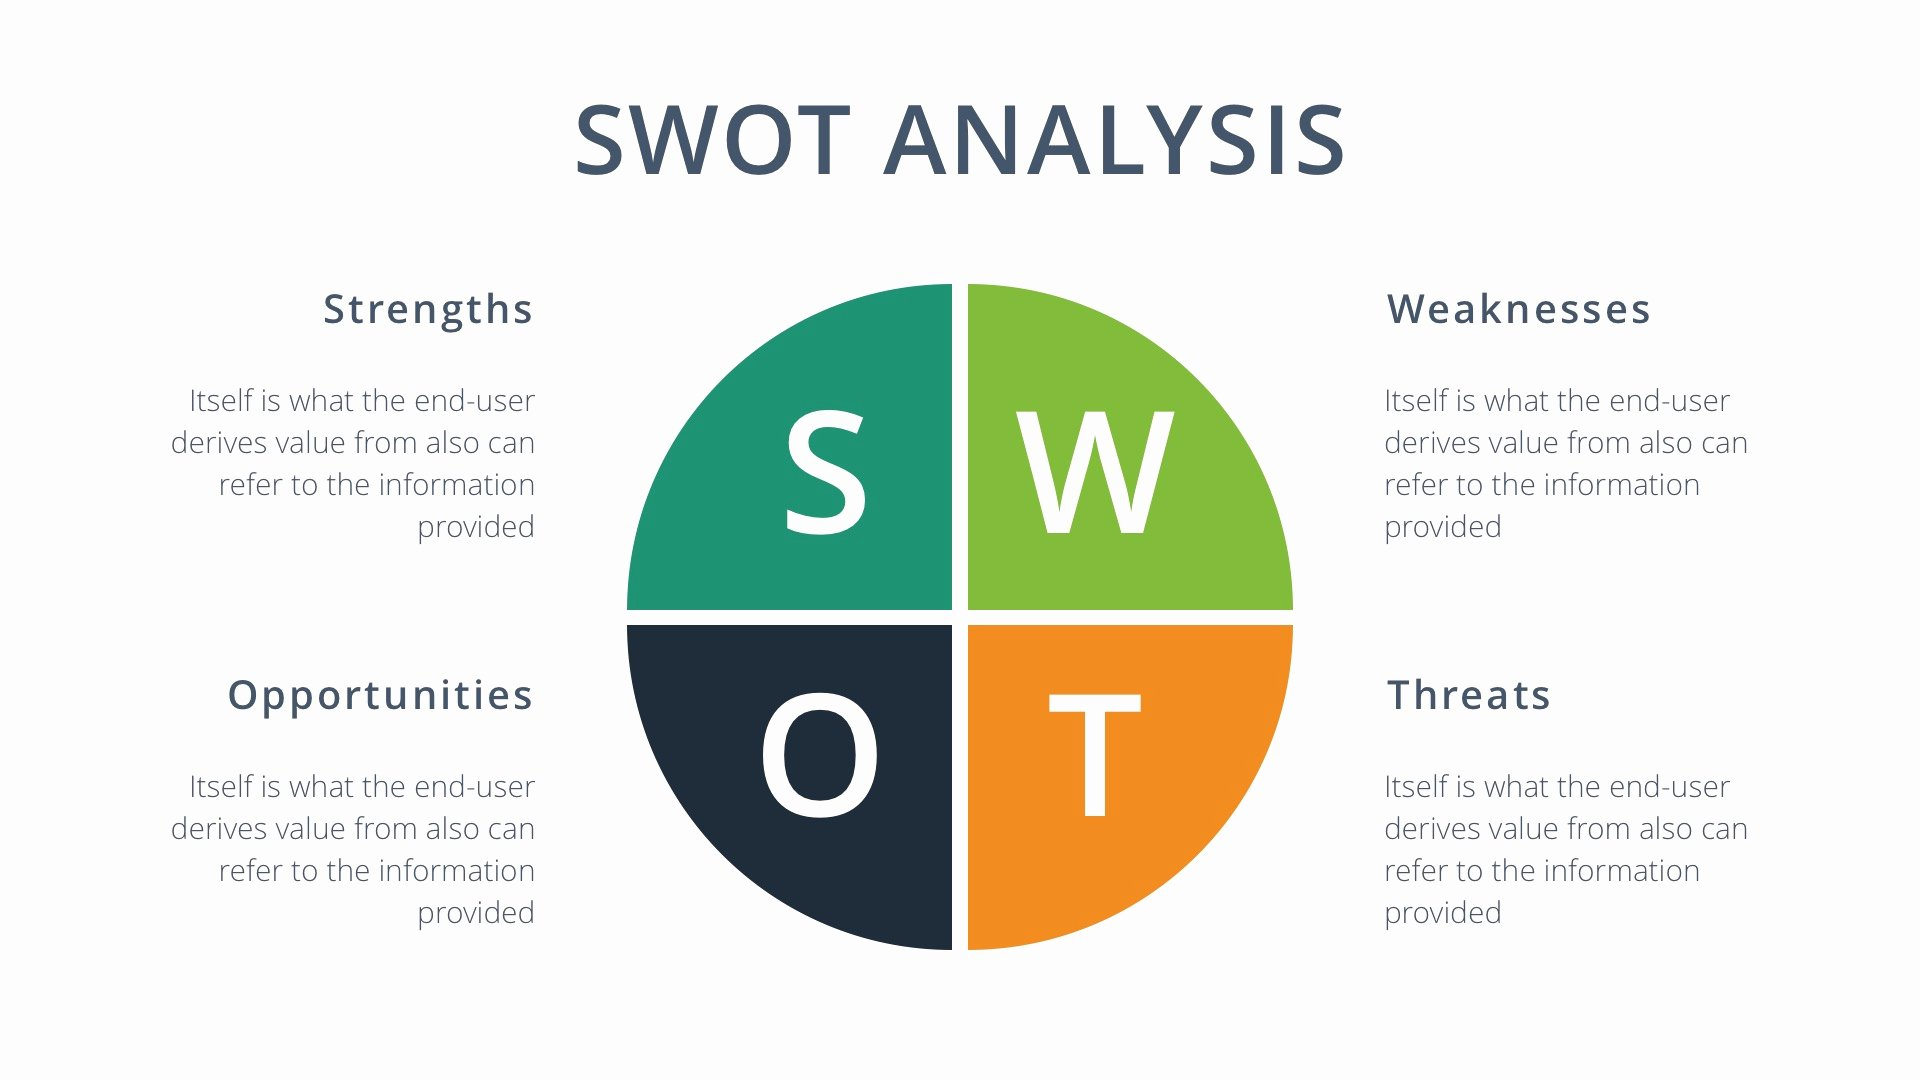 Swot Analysis Template Doc Unique Gas Grill Wiring Diagram toaster Wiring Diagram Wiring